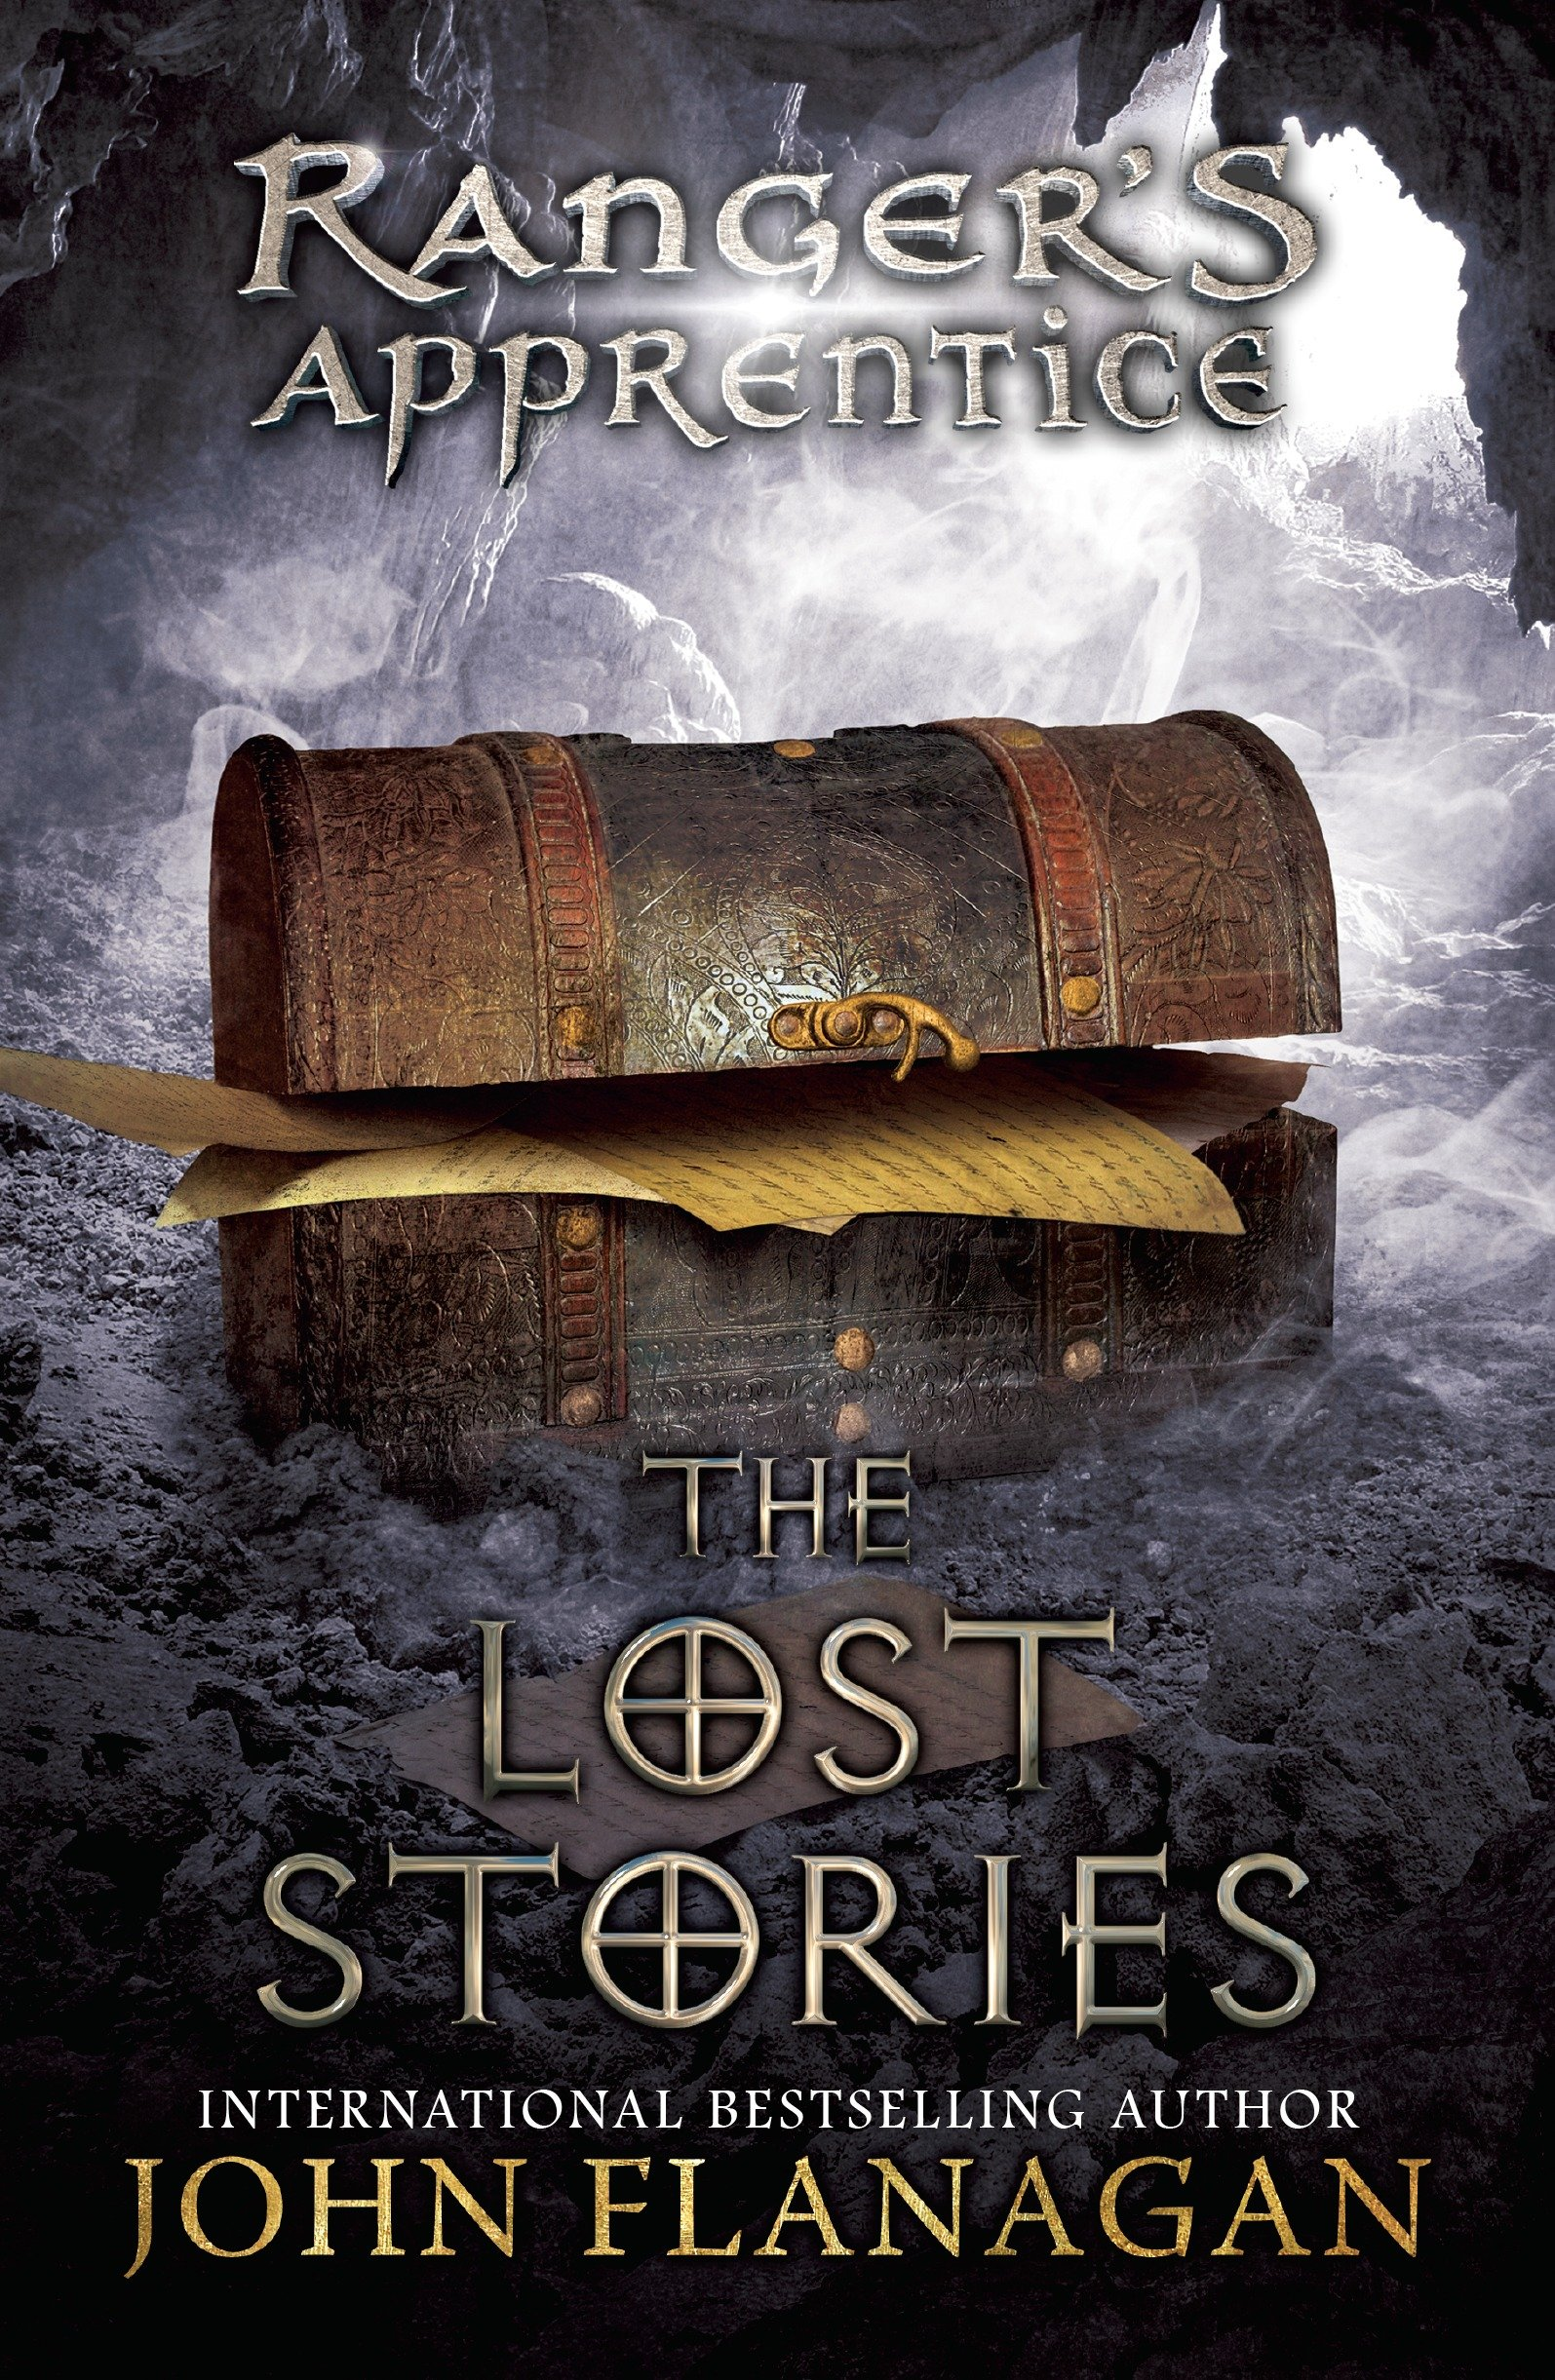 The lost stories cover image